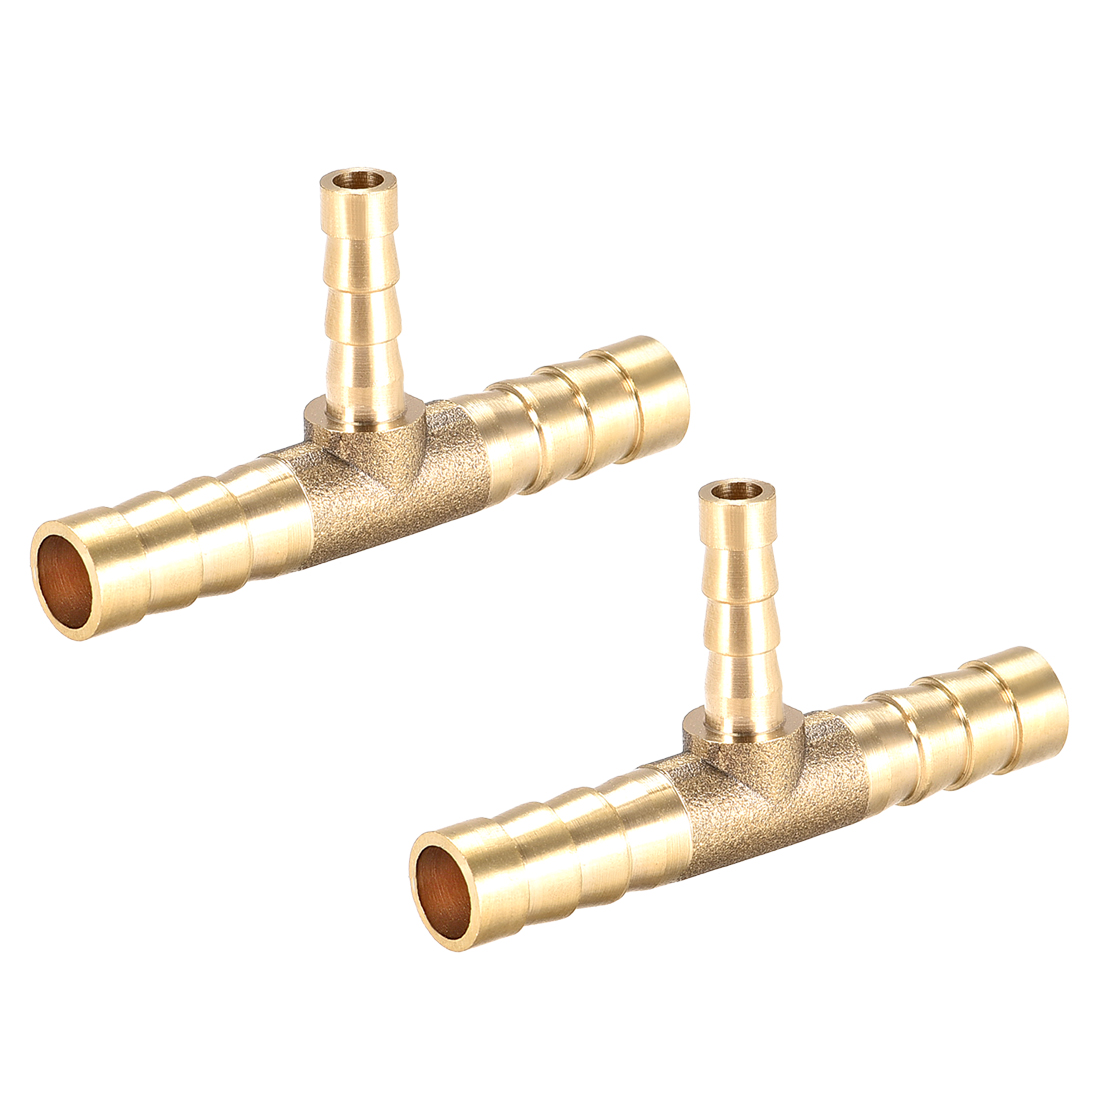 8mm x 5mm x 8mm Brass Hose Reducer Barb Fitting Tee T-Shaped 3 Way Barbed 2pcs